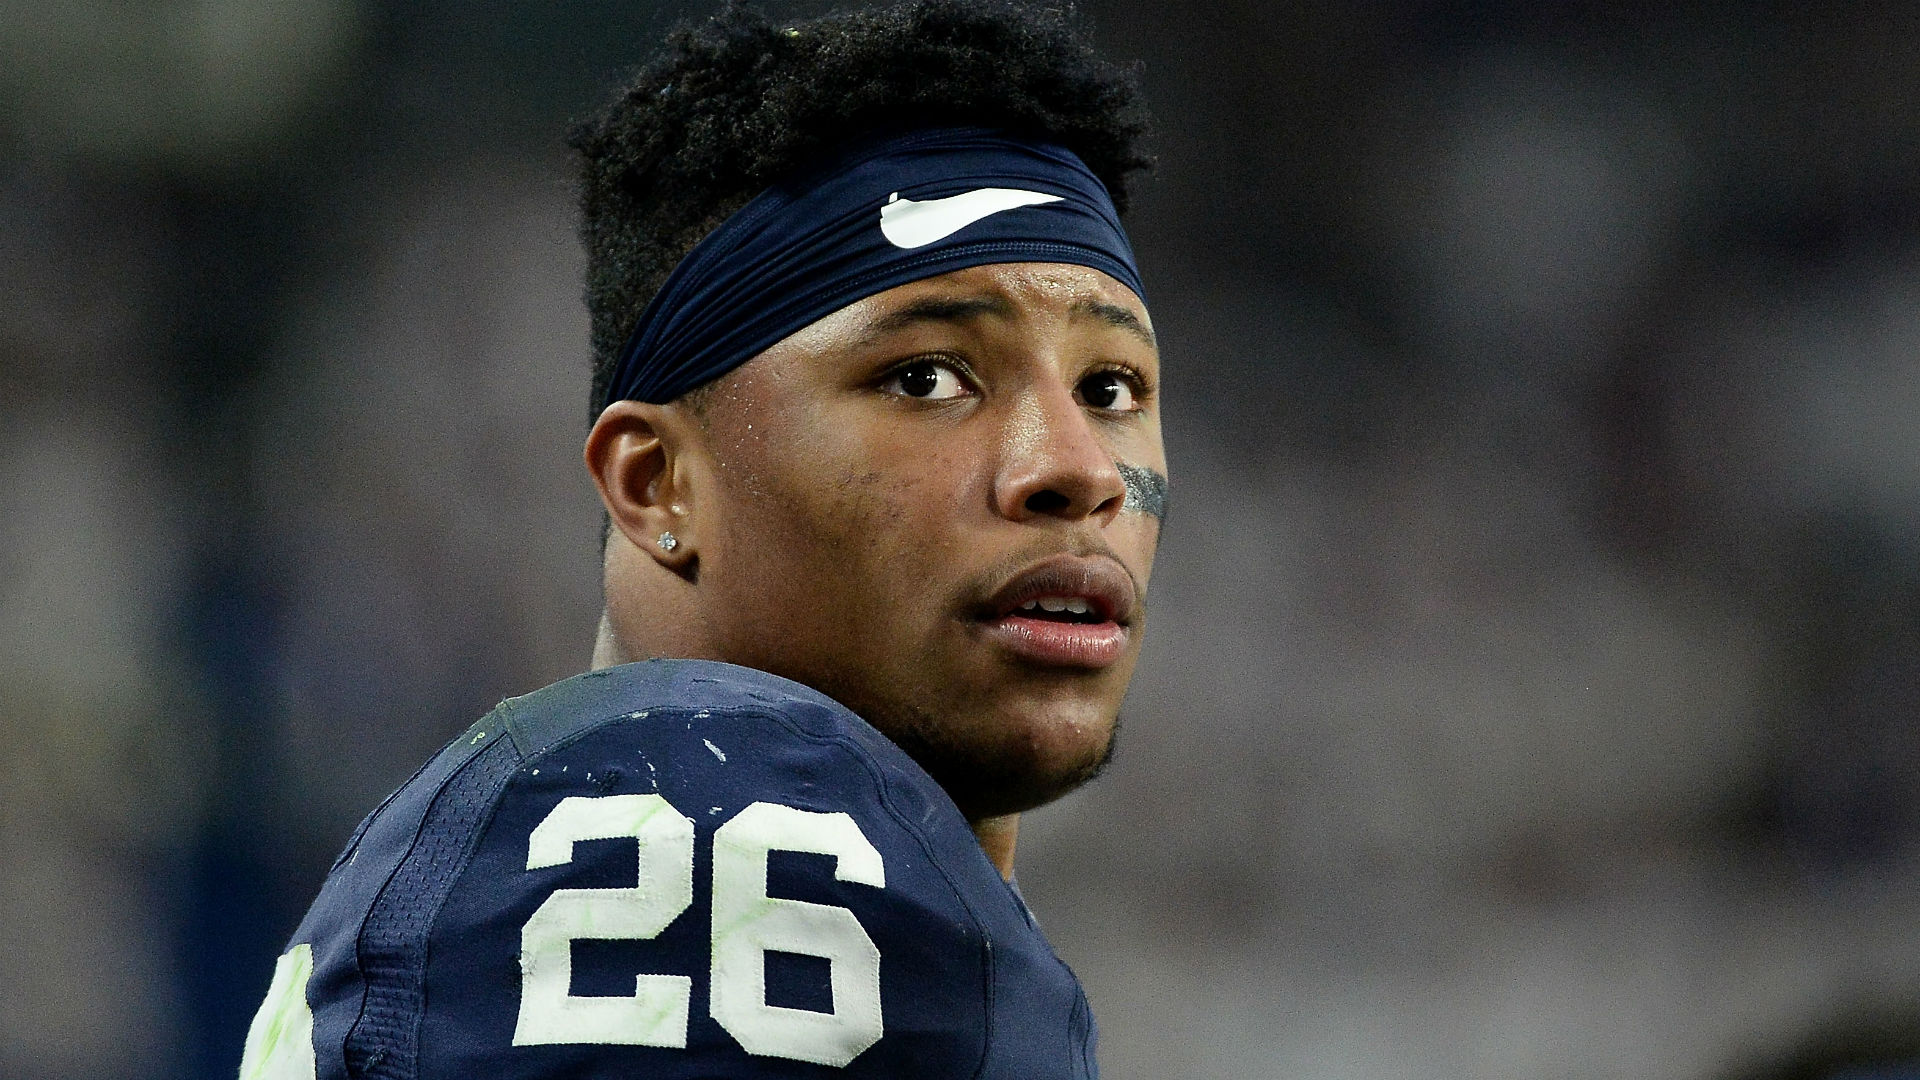 Saquon-barkley-032118-getty-ftrjpg_1stnssggmvsa815cmd8e9lj6hw